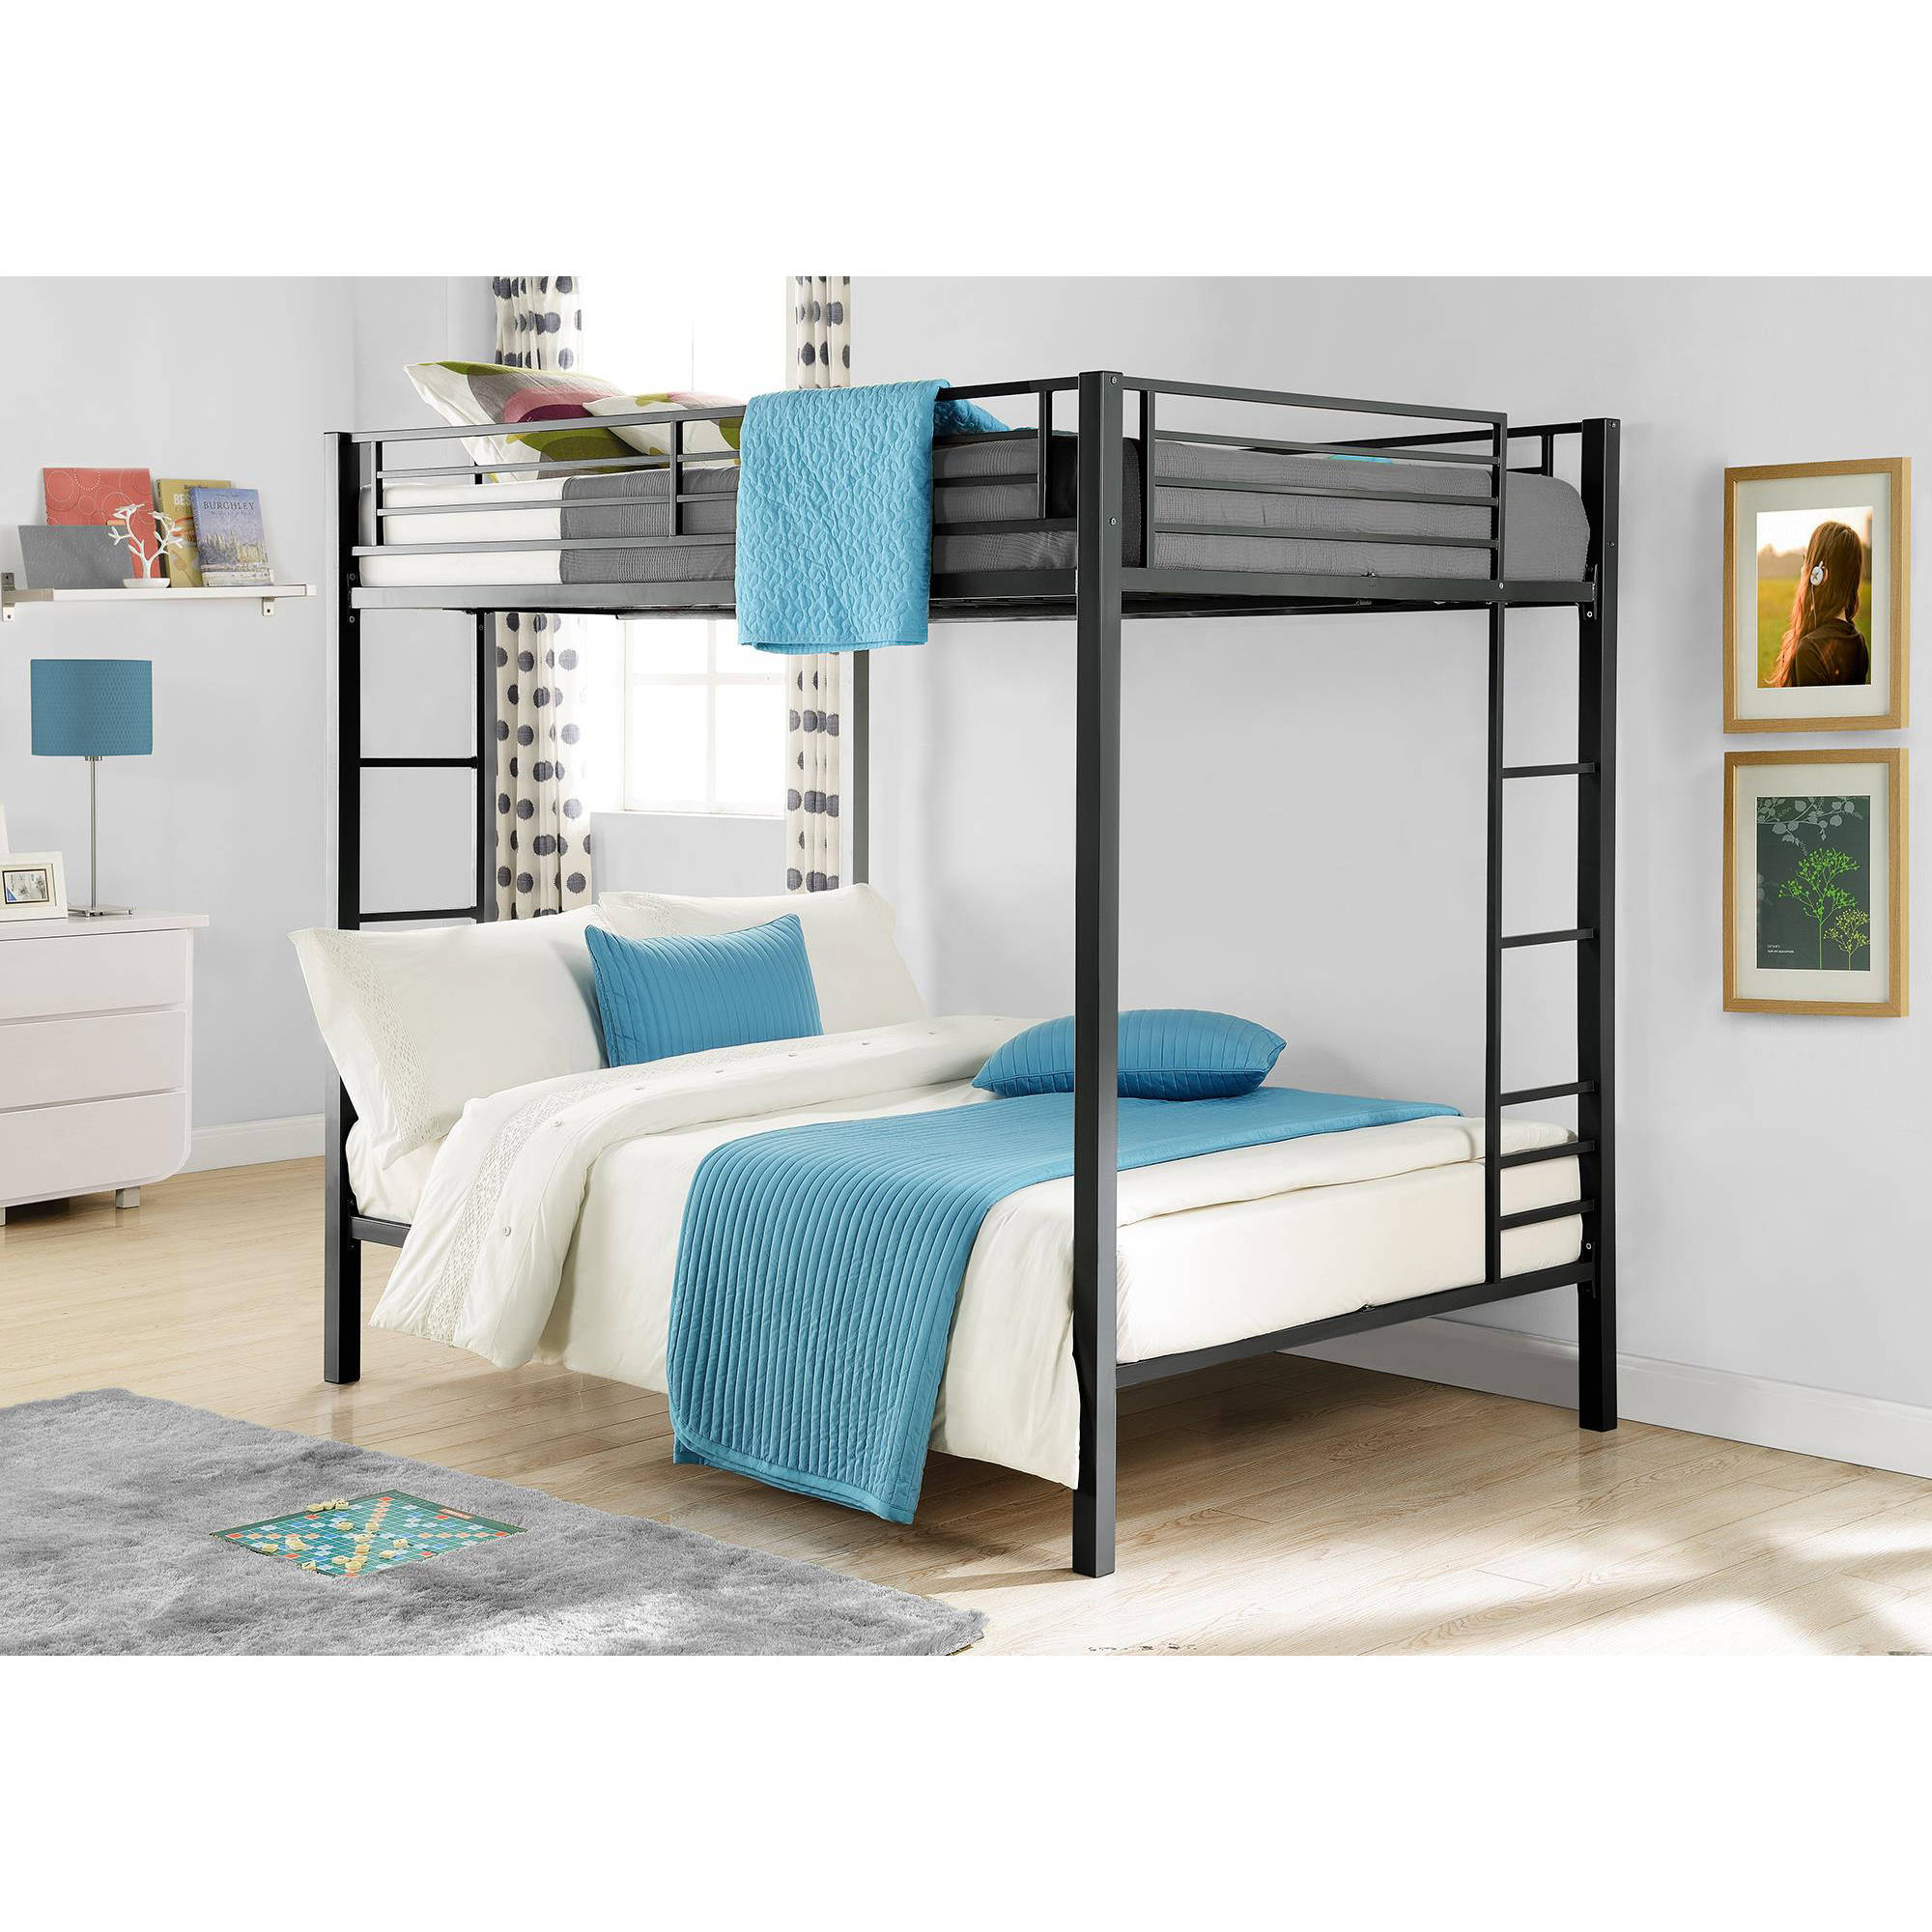 . Dorel Full Over Full Metal Bunk Bed and Mattress VALUE Bundle   Walmart com